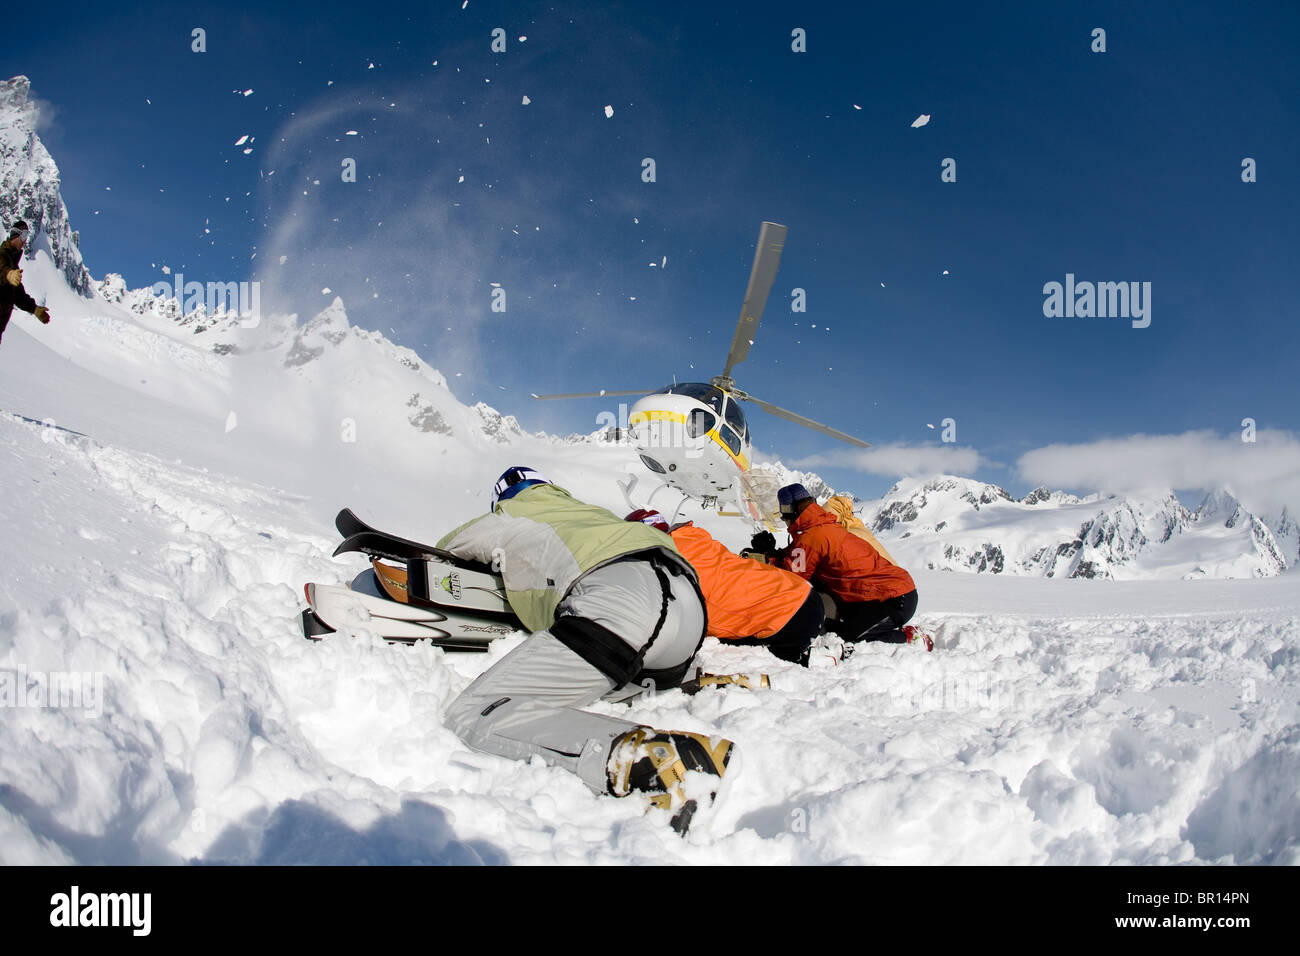 Skiers prepare to load helicopter while skiing in backcountry of southeast Alaska near Haines. - Stock Image